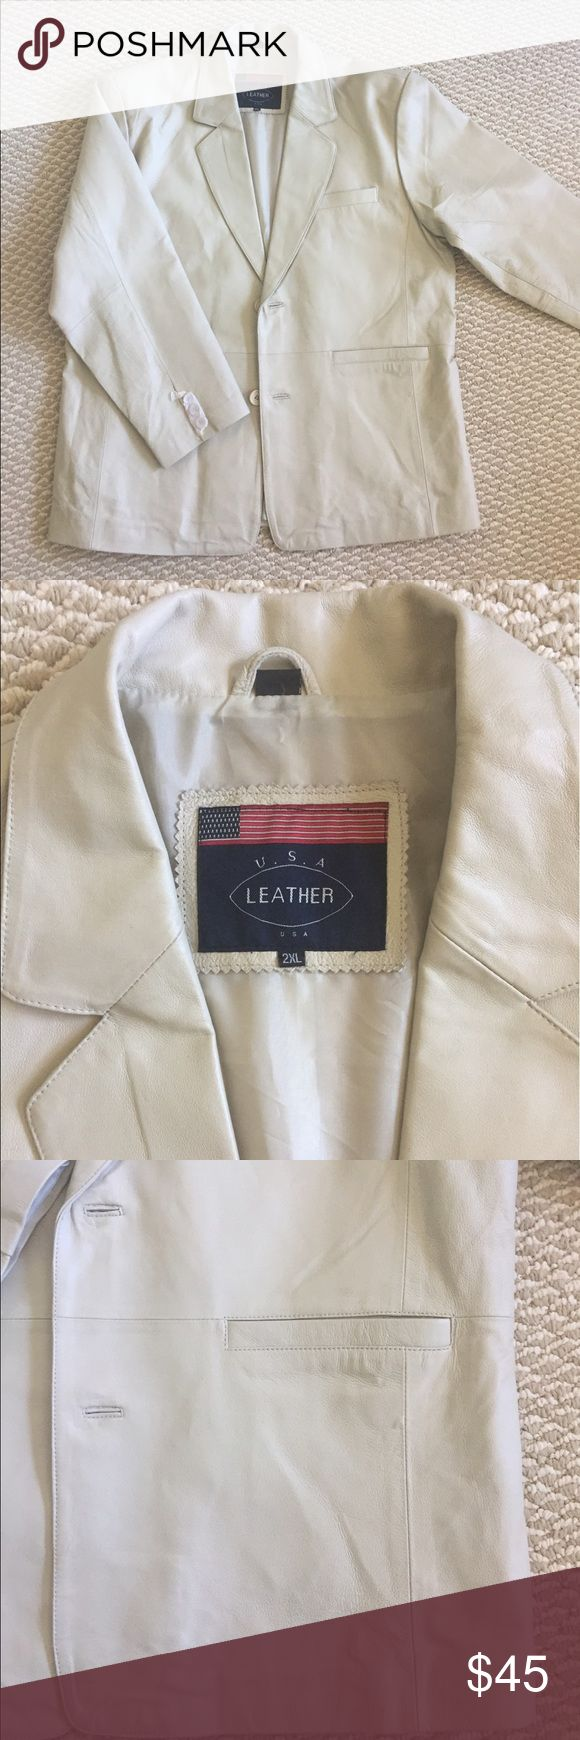 """Men's U.S.A. LEATHER leather jacket U.S.A. LEATHER leather jacket light gray in sz 2XL. Long sleeve, fully lined (100% nylon),front two buttons closure, one chest pocket inside and one outside, two front pockets. Measurements taken flat: chest 26"""",shoulders 21.5"""",sleeve 26"""",length 32""""(back).Condition: new (wrinkled, has stain and imprints from storage as pictured U.S.A. LEATHER Jackets & Coats"""